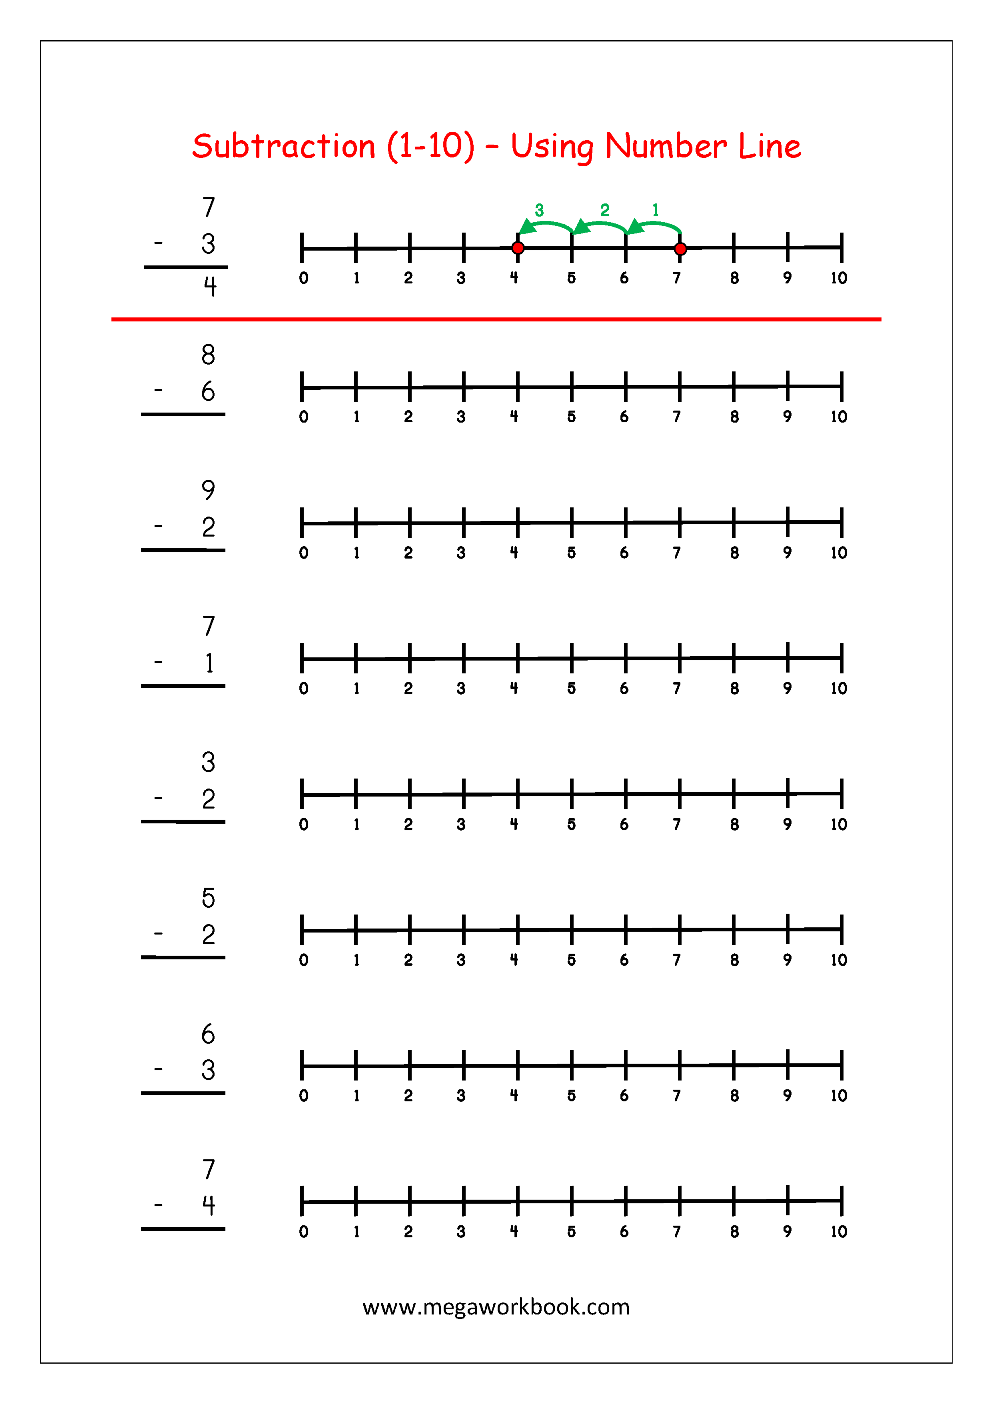 Subtraction_1_to_10_Using_Number_Line_Worksheet_05